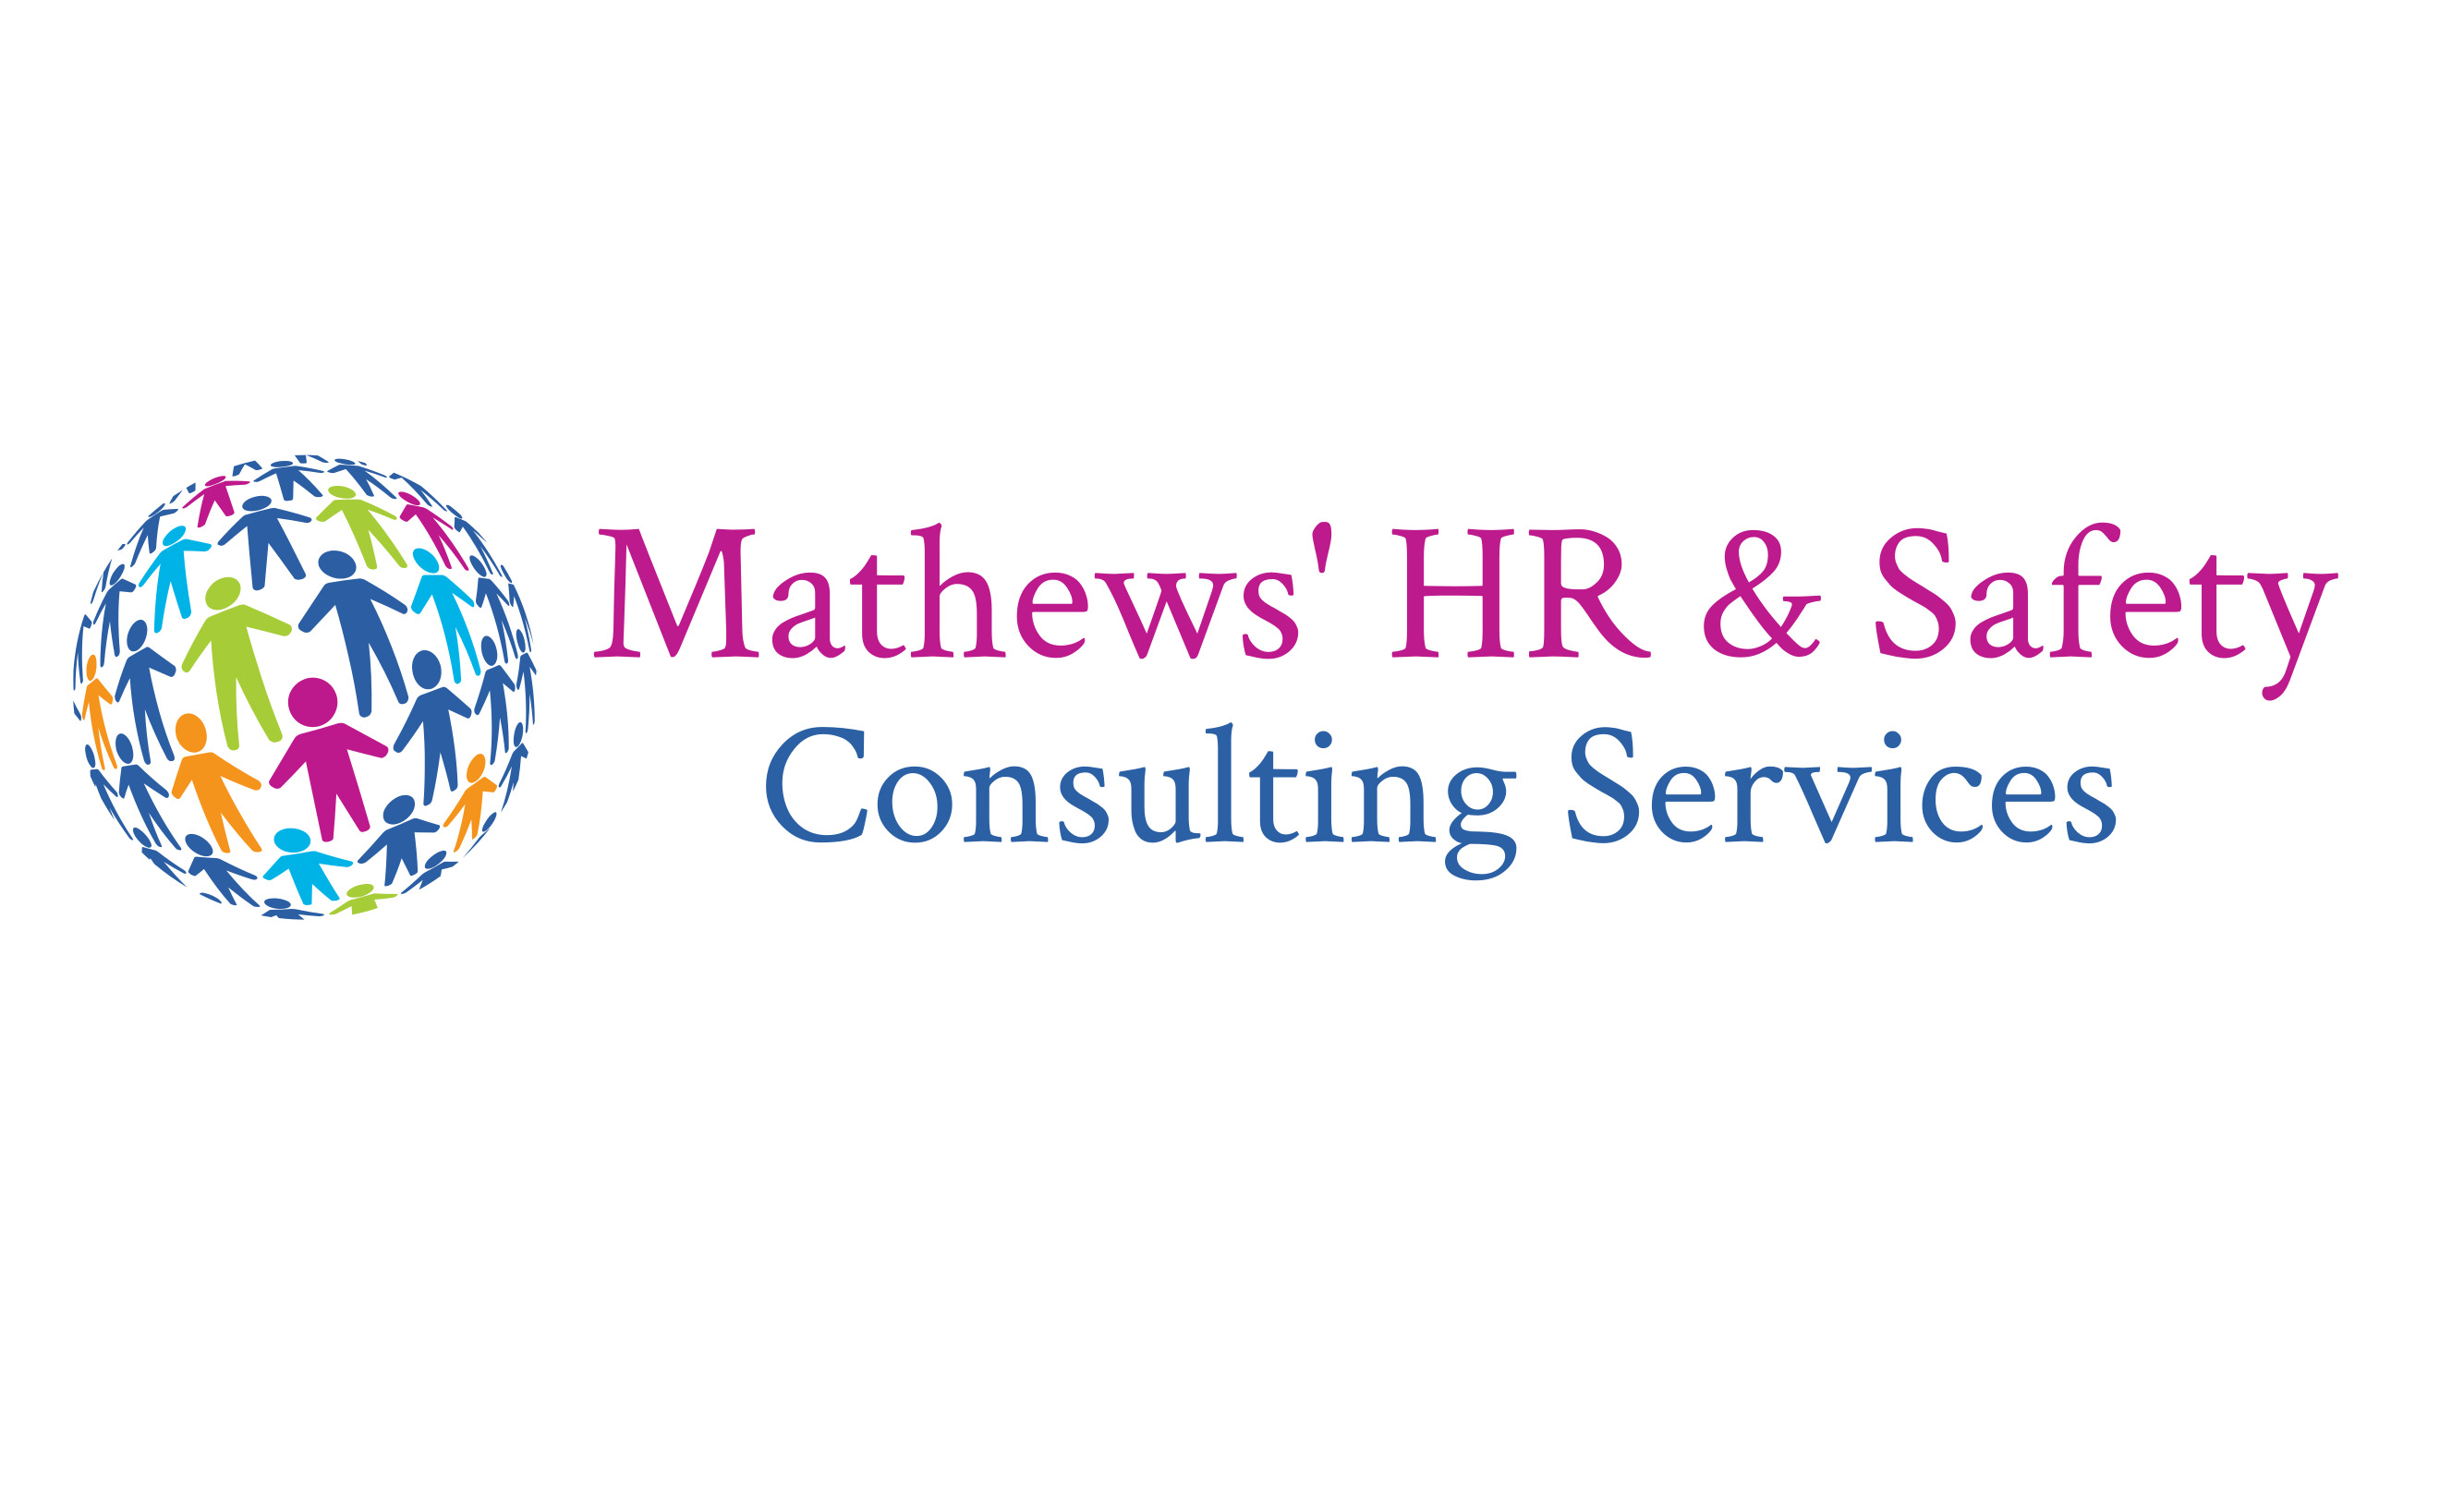 Mathews' HR & Safety Consulting Services